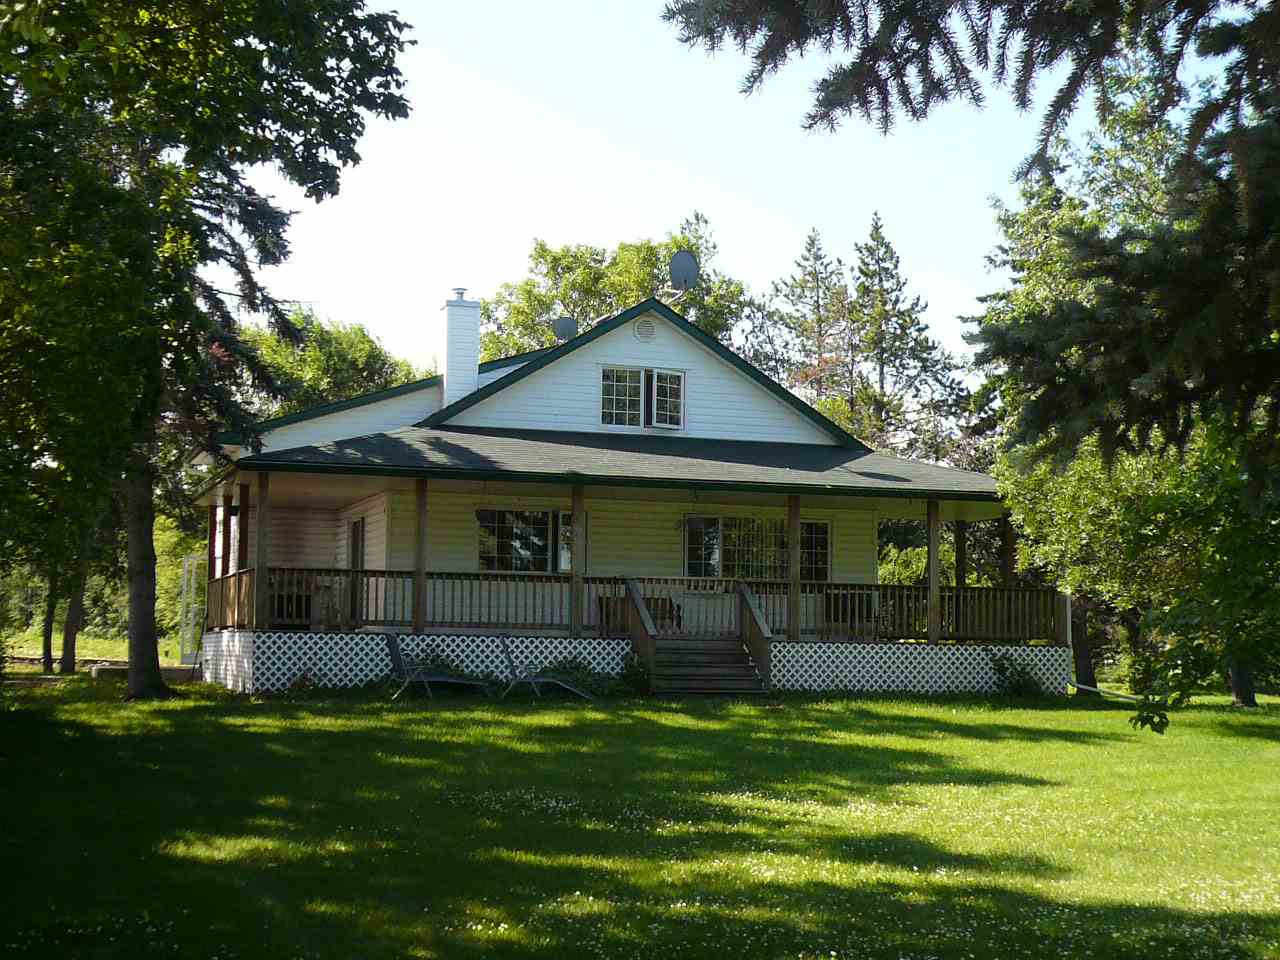 Main Photo: 48319 Hwy 795: Rural Leduc County House for sale : MLS® # E4078522